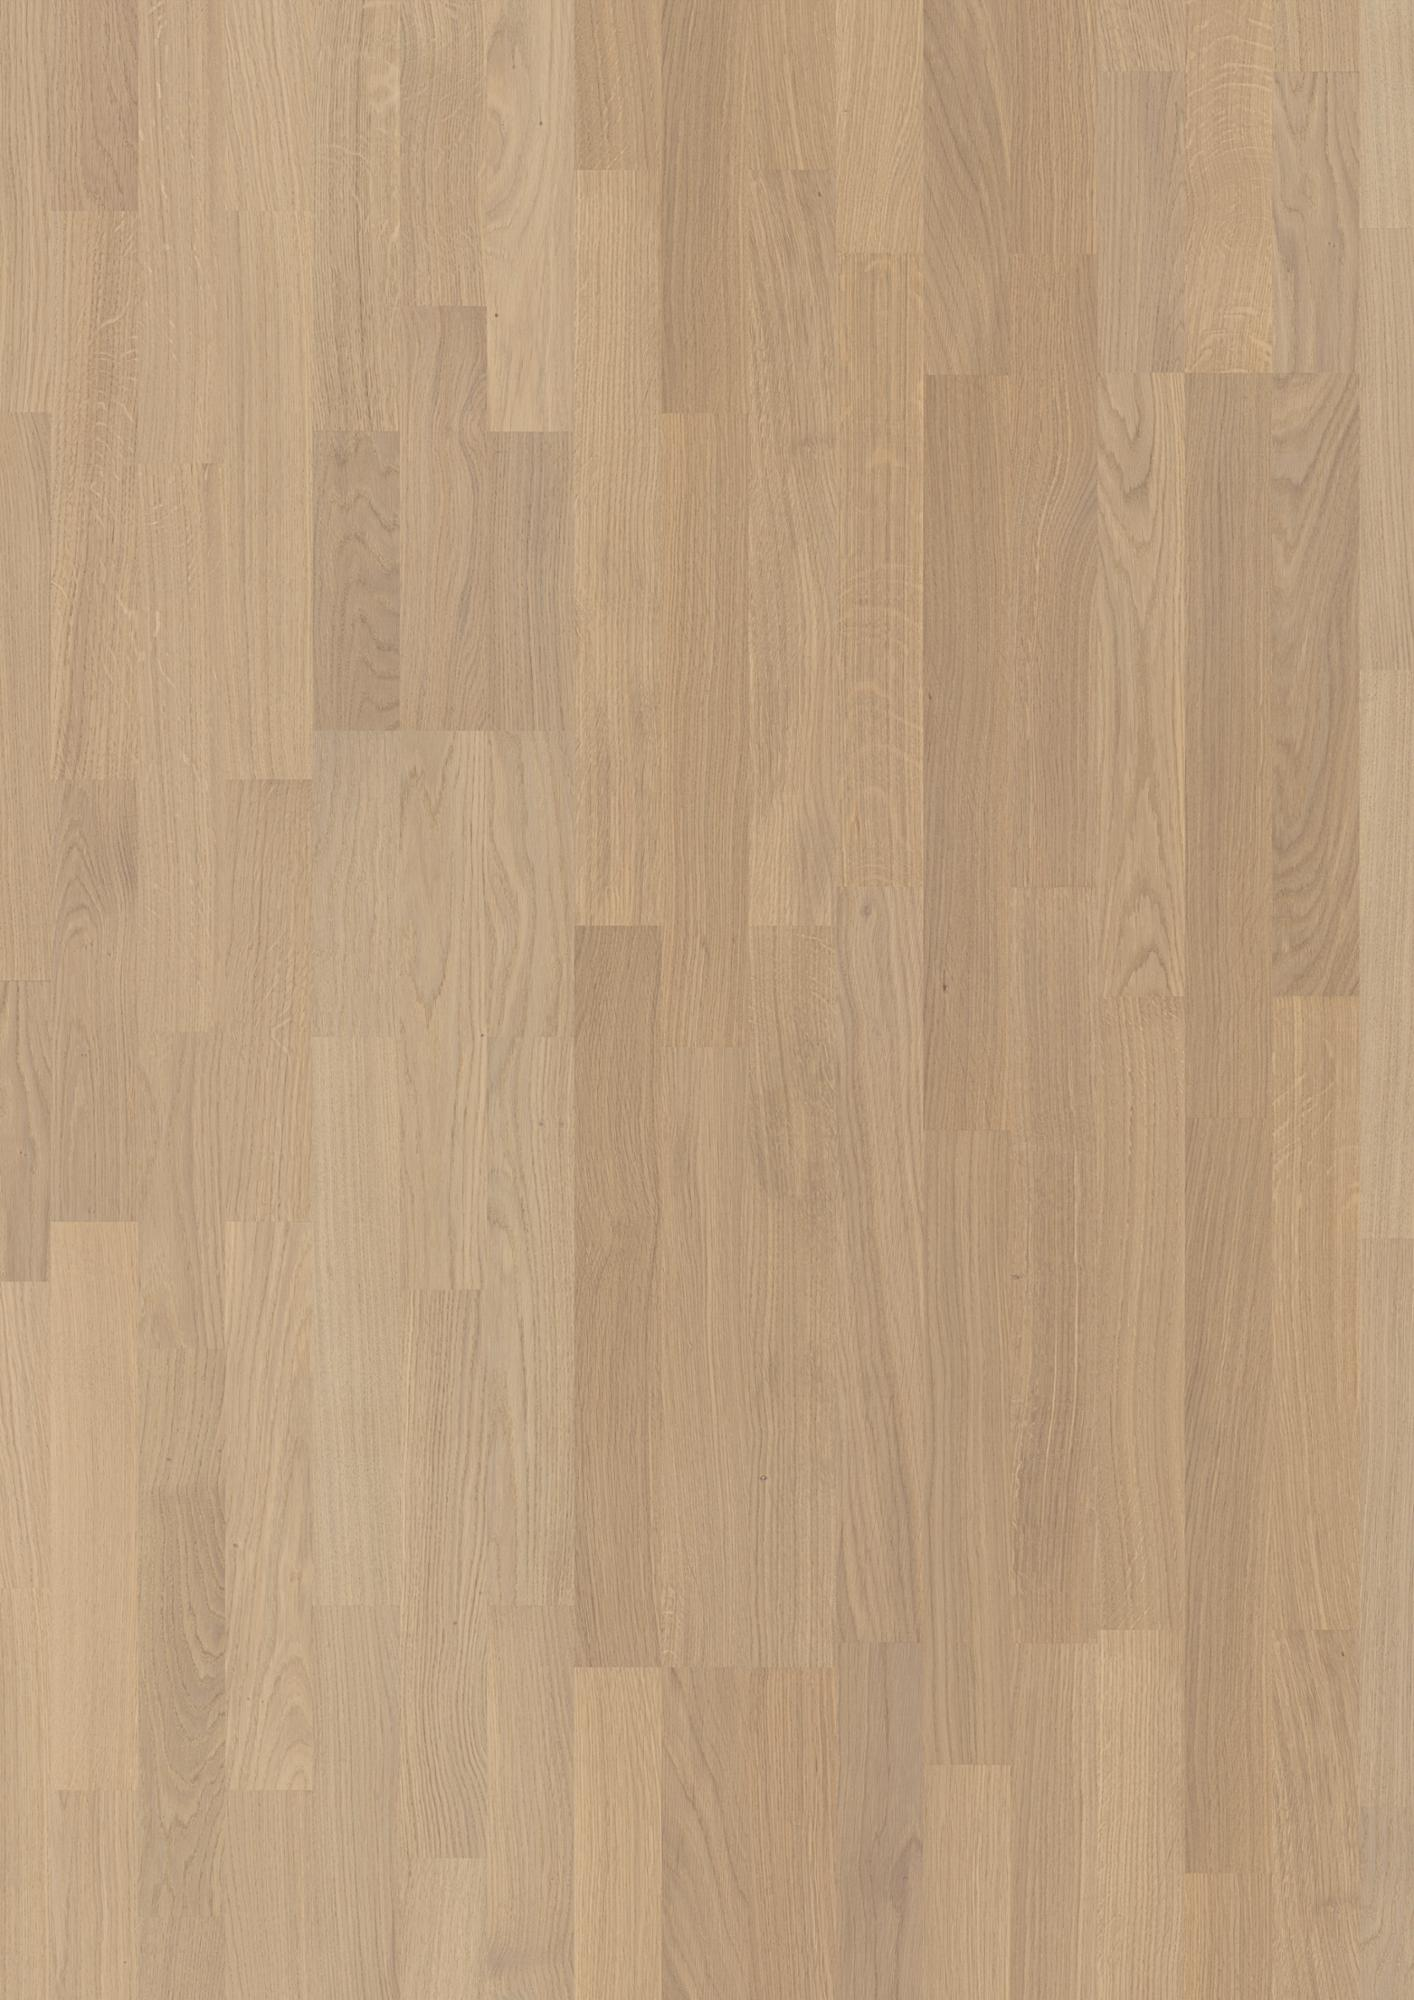 Oak Andante, Live Pure lacquer, brushed, Longstrip 3-Strip, 14x215x2200mm